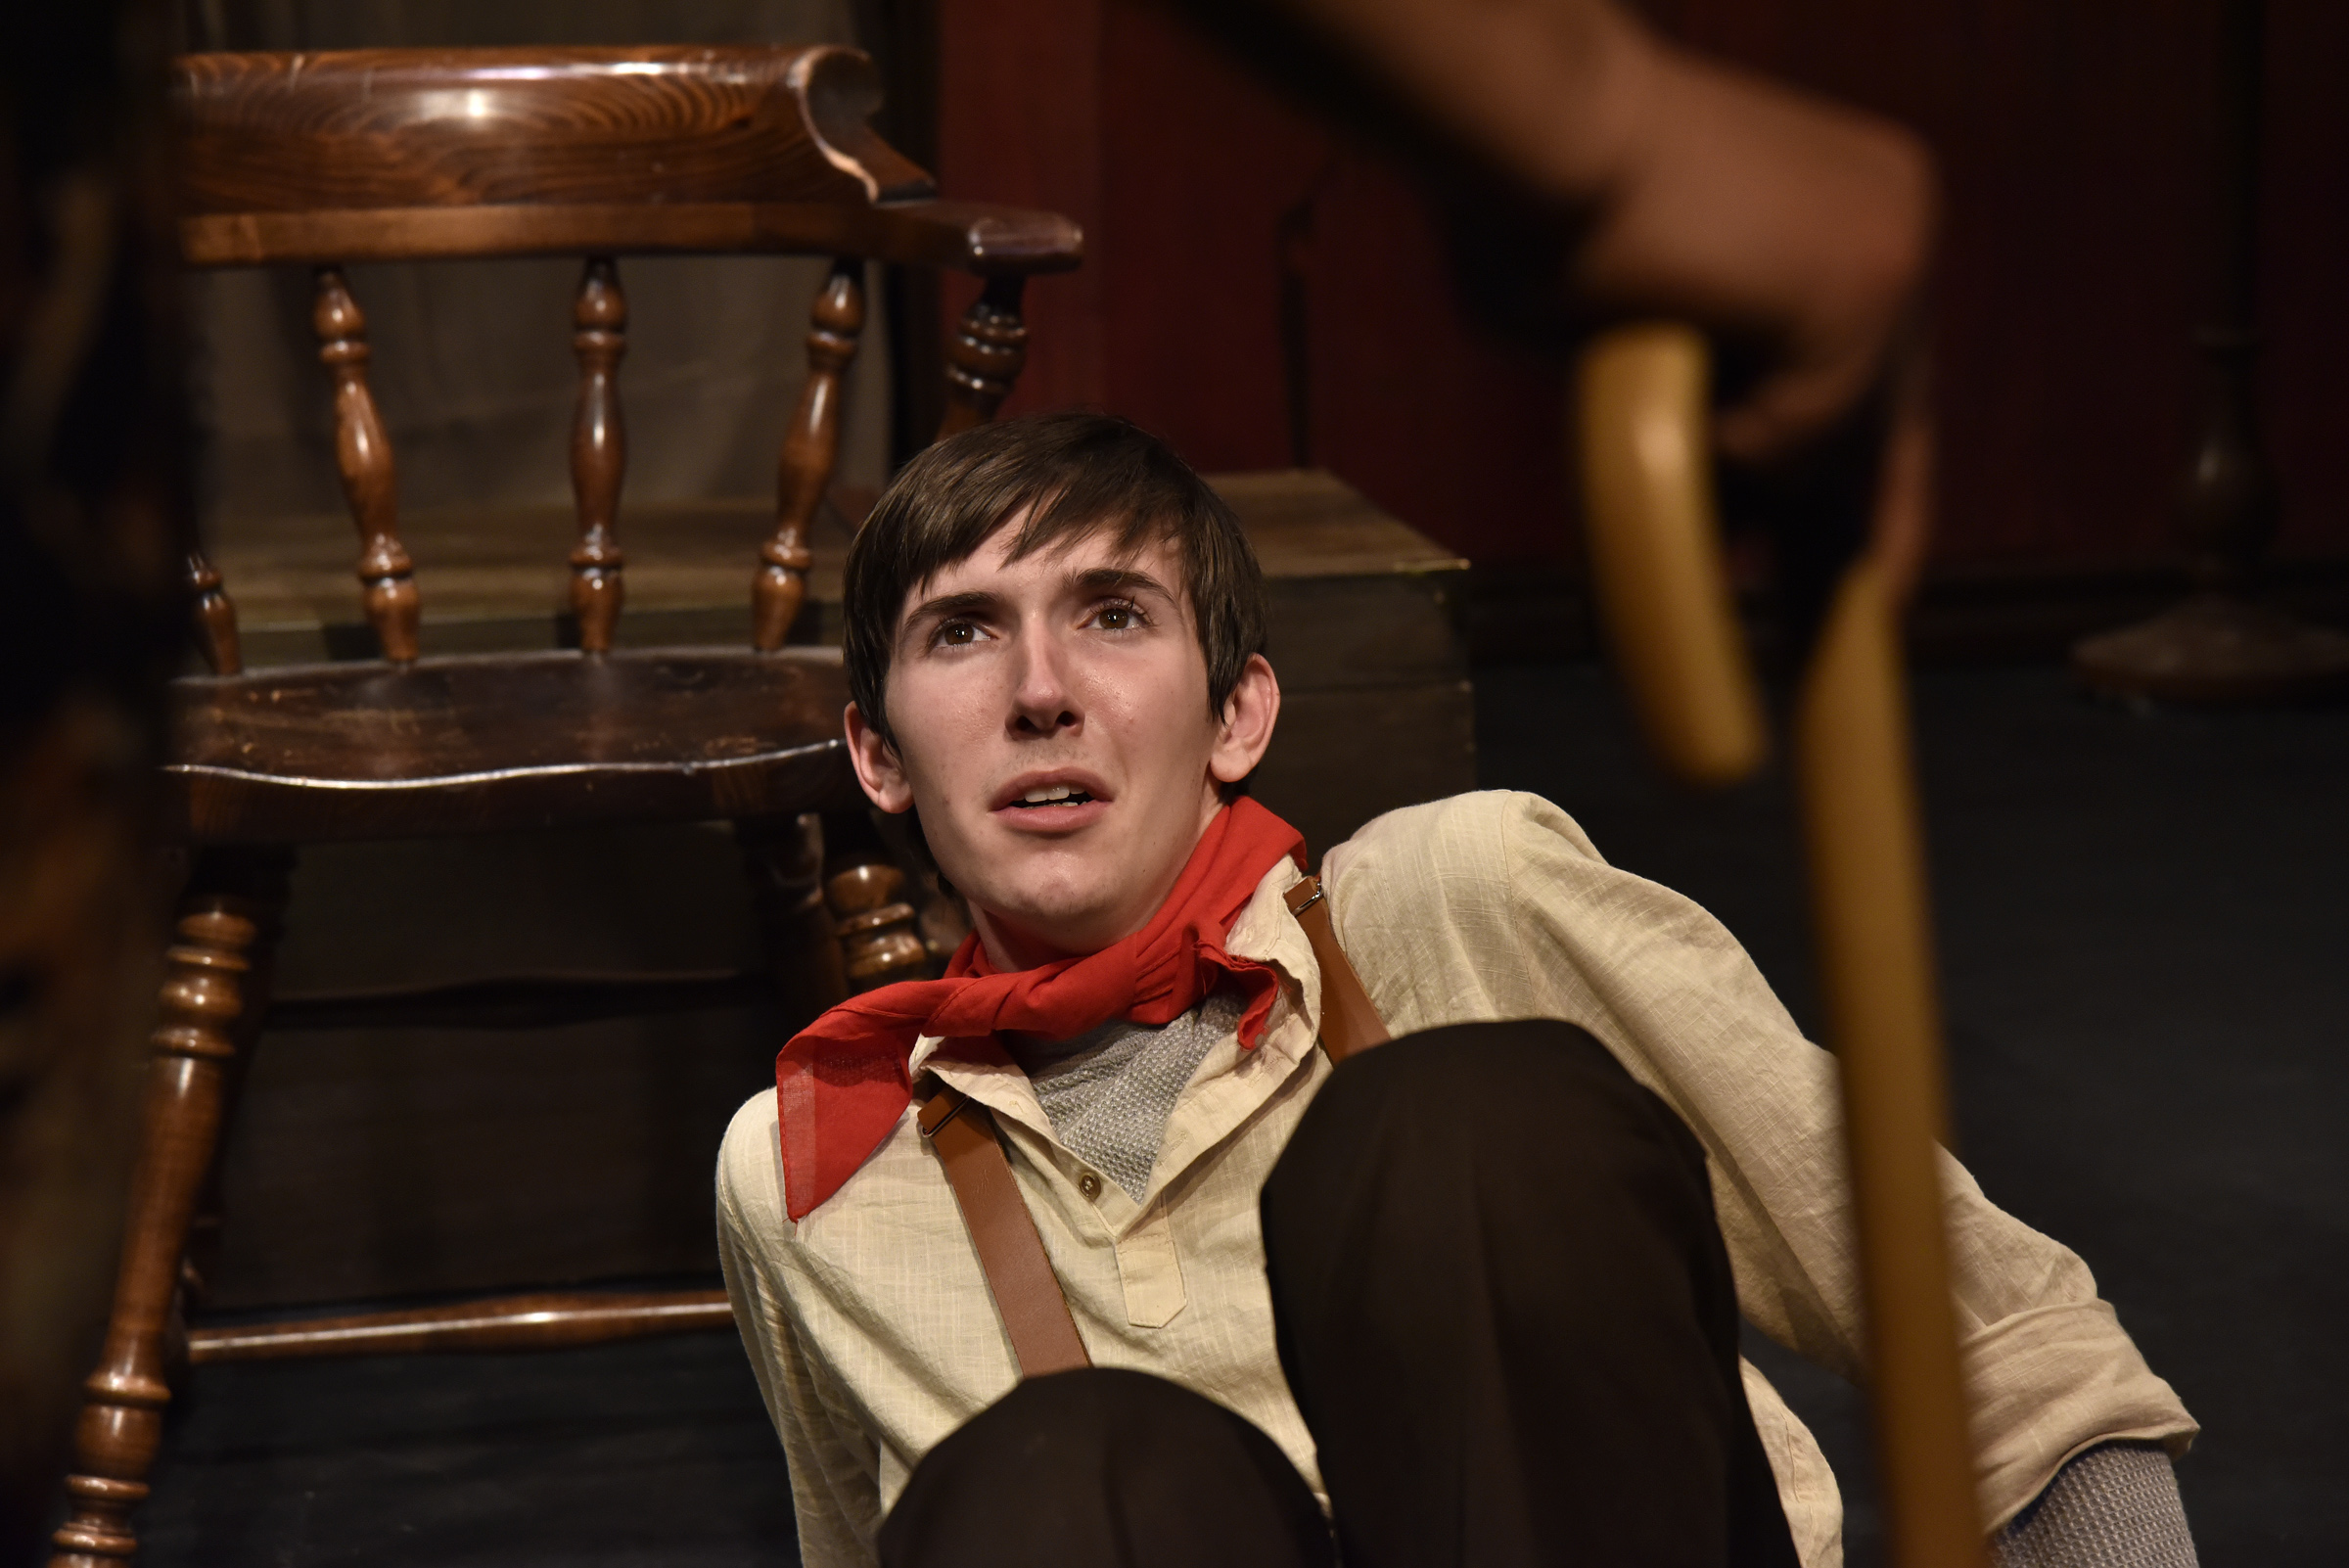 Josh Eliot in  The Medium .  Costumes by Becky McGuigan.  Photo by Wendy Mutz